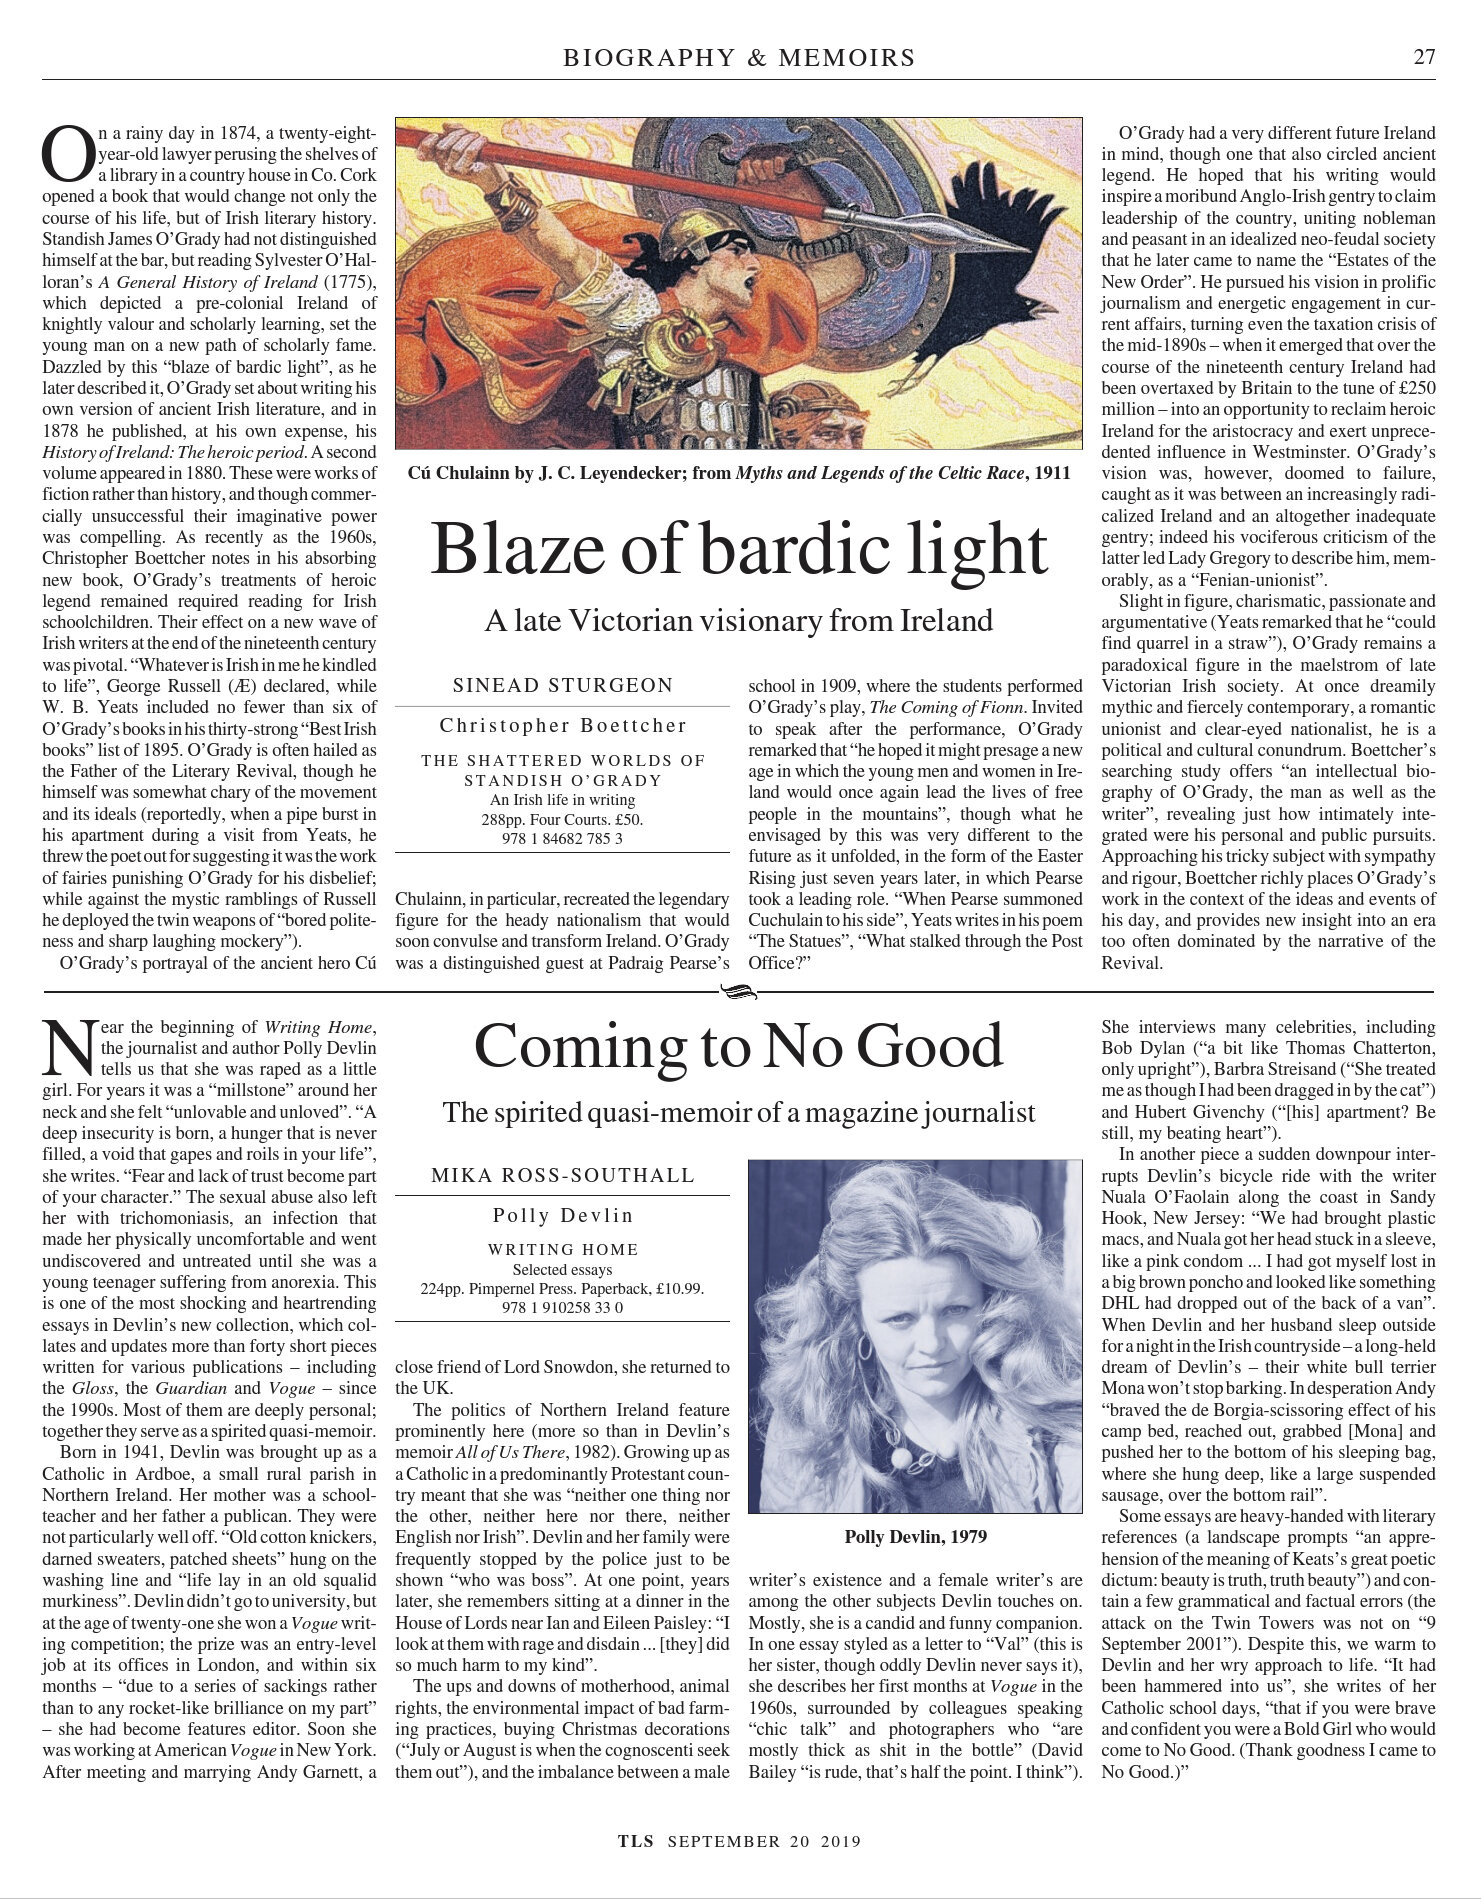 Coming to No Good, Published in The Times Literary Supplement, September 20, 2019